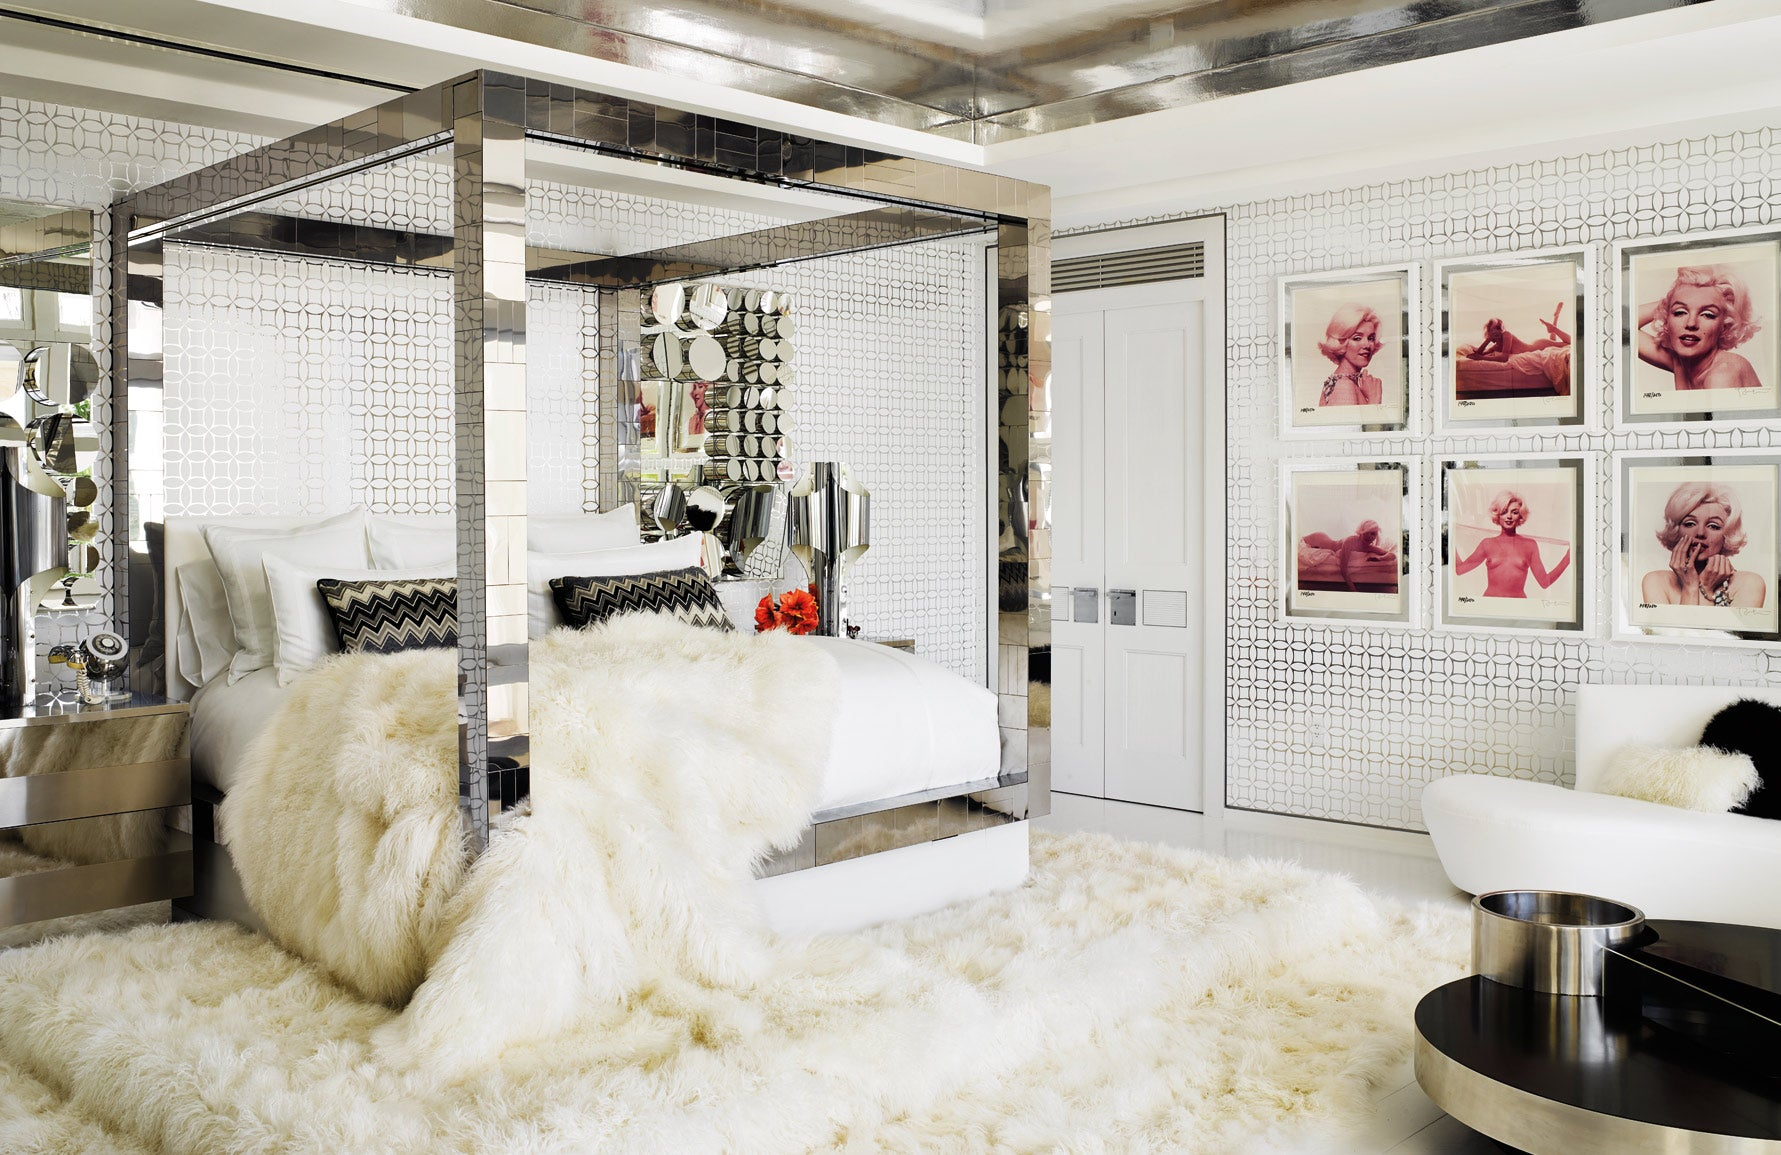 Tommy Hilfiger bedroom | Martyn Lawrence Bullard | Celebrity Interior Designer | White Bedroom, White Fur Rug, Four Poster Bed | Read more in The Luxurist at LuxDeco.com